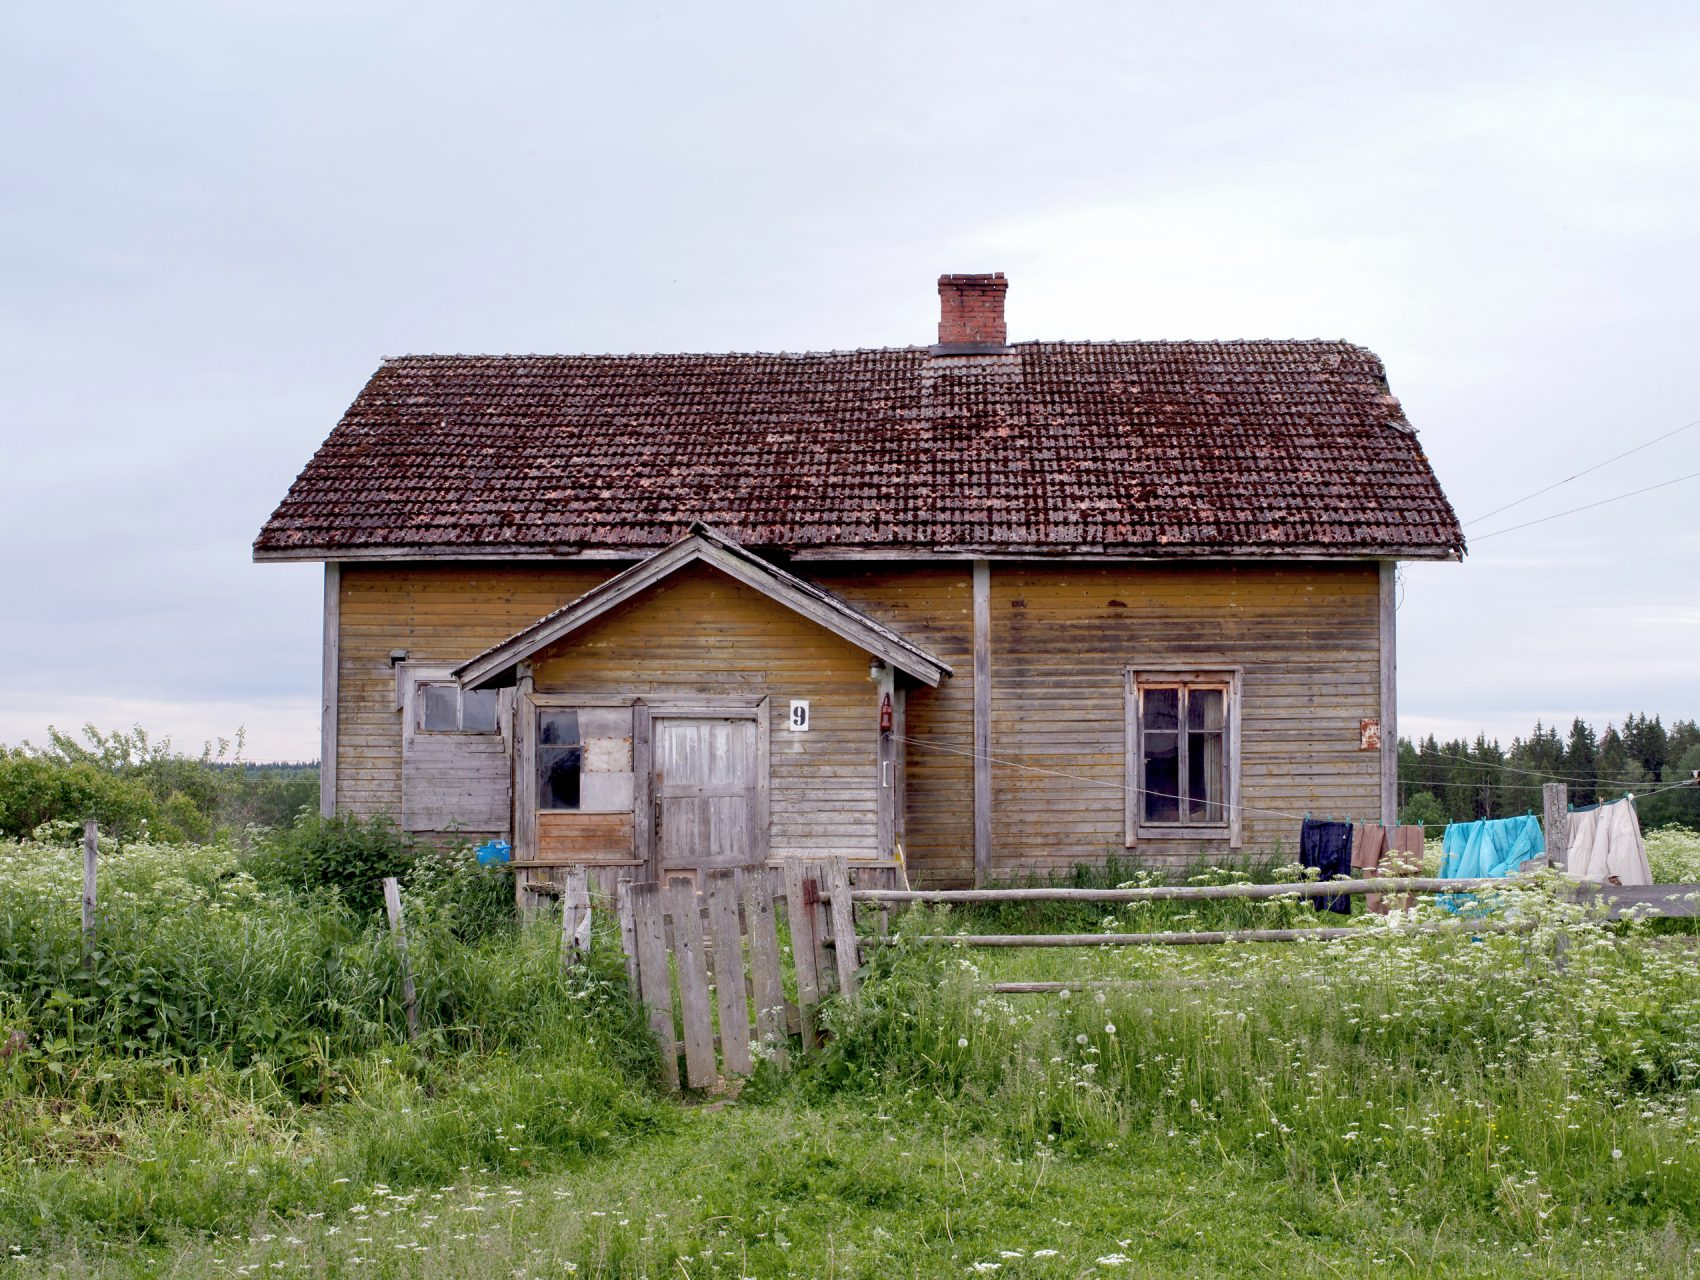 Kasaniya (Tracks), c-print, 100x120, 2013 / Russia, Republic of Karelia. A house in the Leppyaselkya settlement (Leppäselkä in Finnish), which had twelve residents in 2013